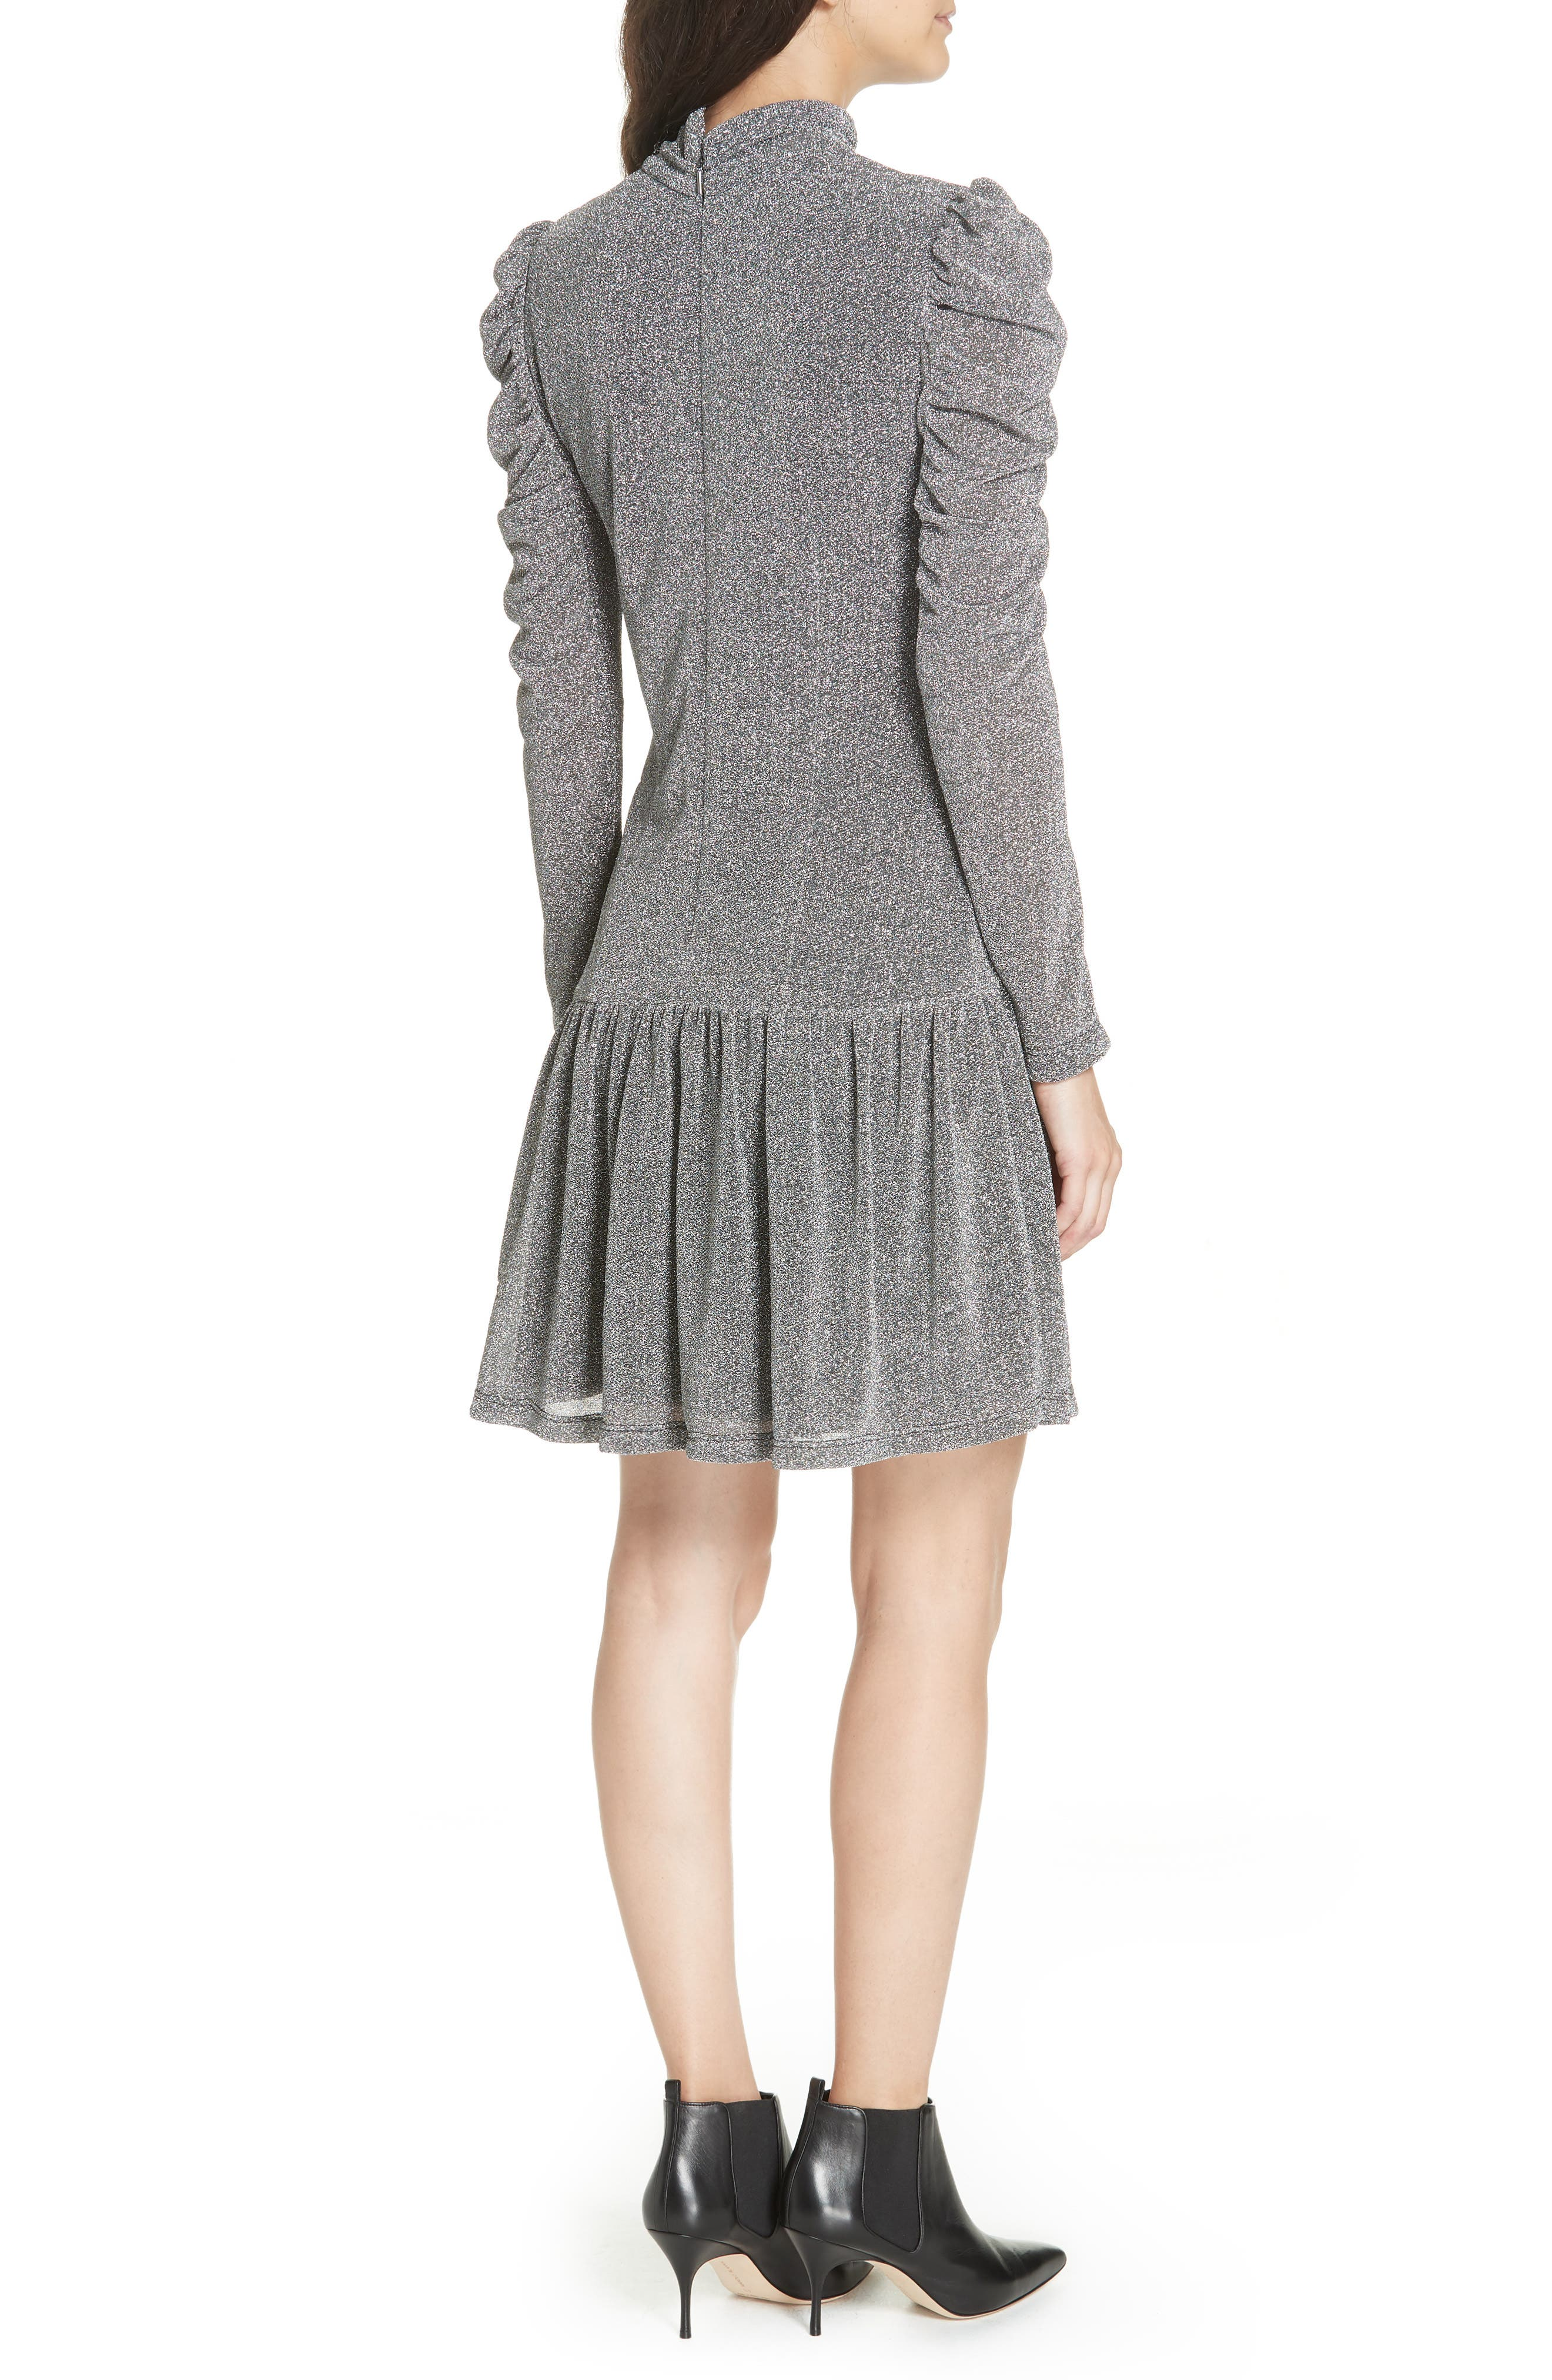 REBECCA TAYLOR,                             Gathered Metallic Jersey Dress,                             Alternate thumbnail 2, color,                             043